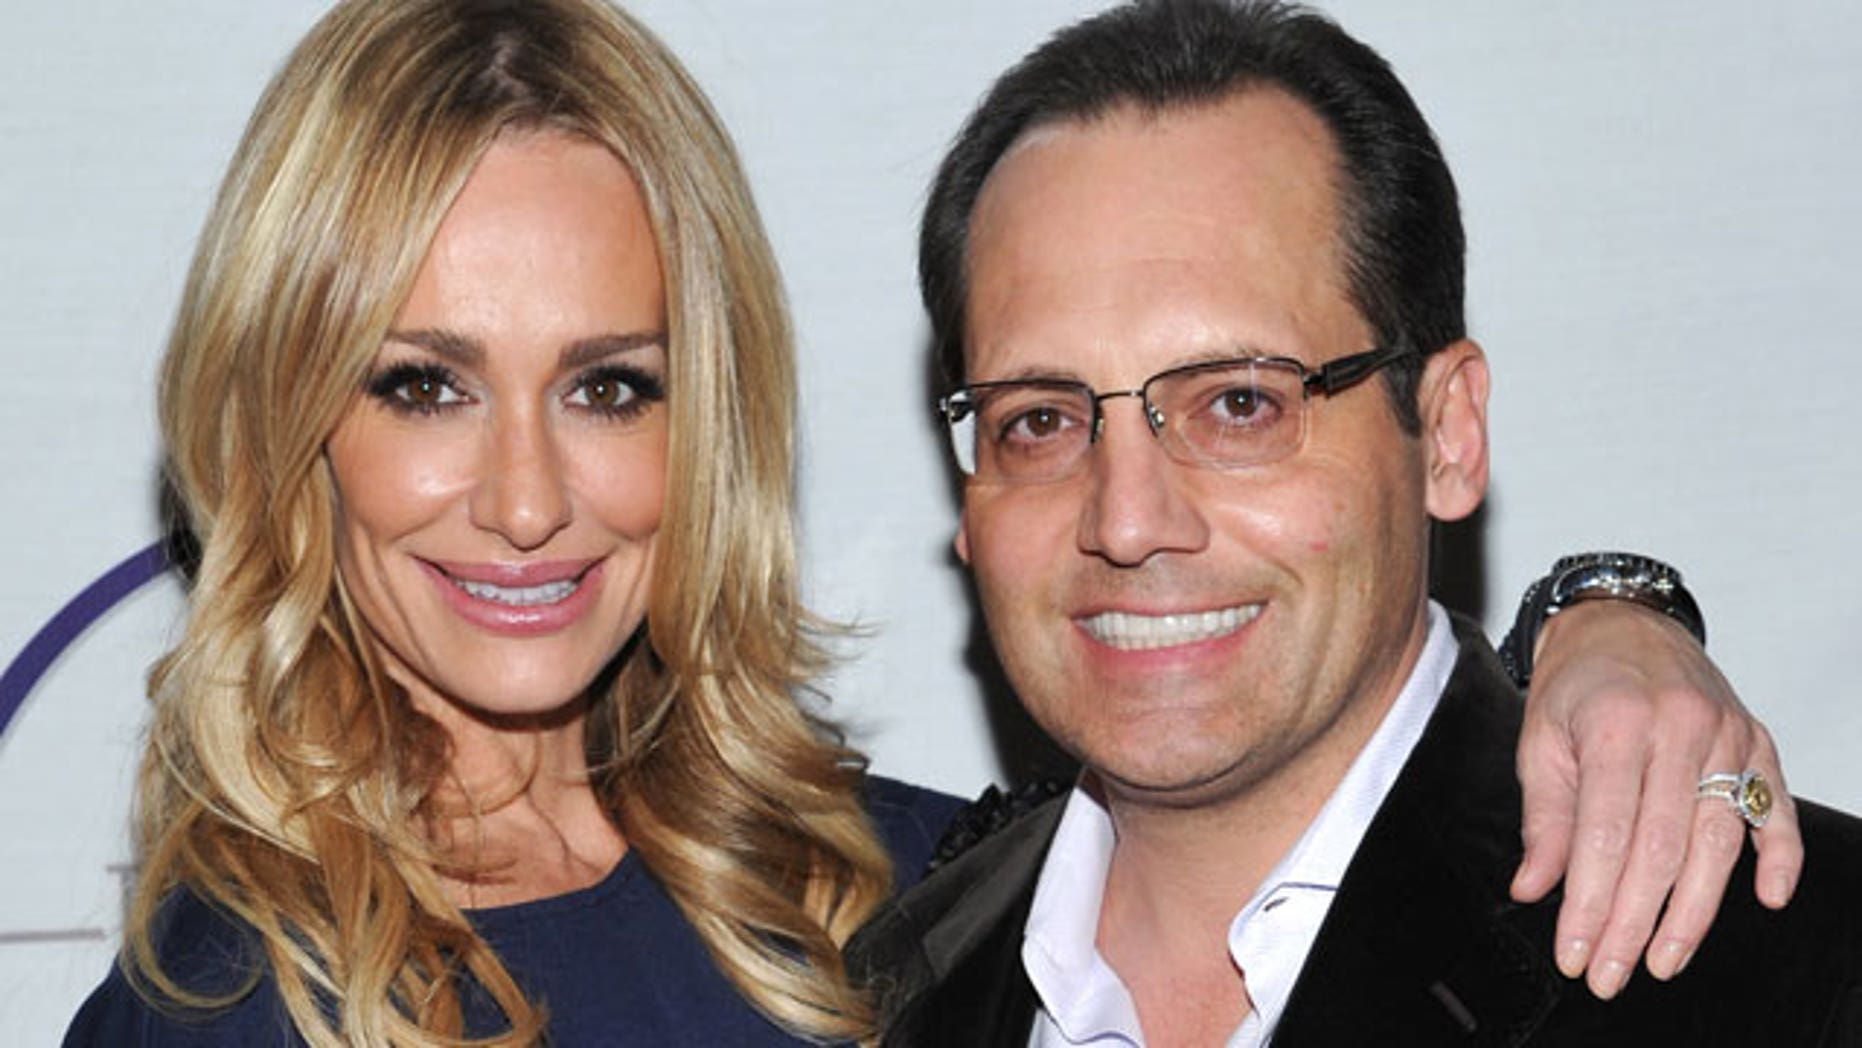 Taylor Armstrong and her late husband Russell Armstrong, who was found dead of an apparent suicide. (AP)